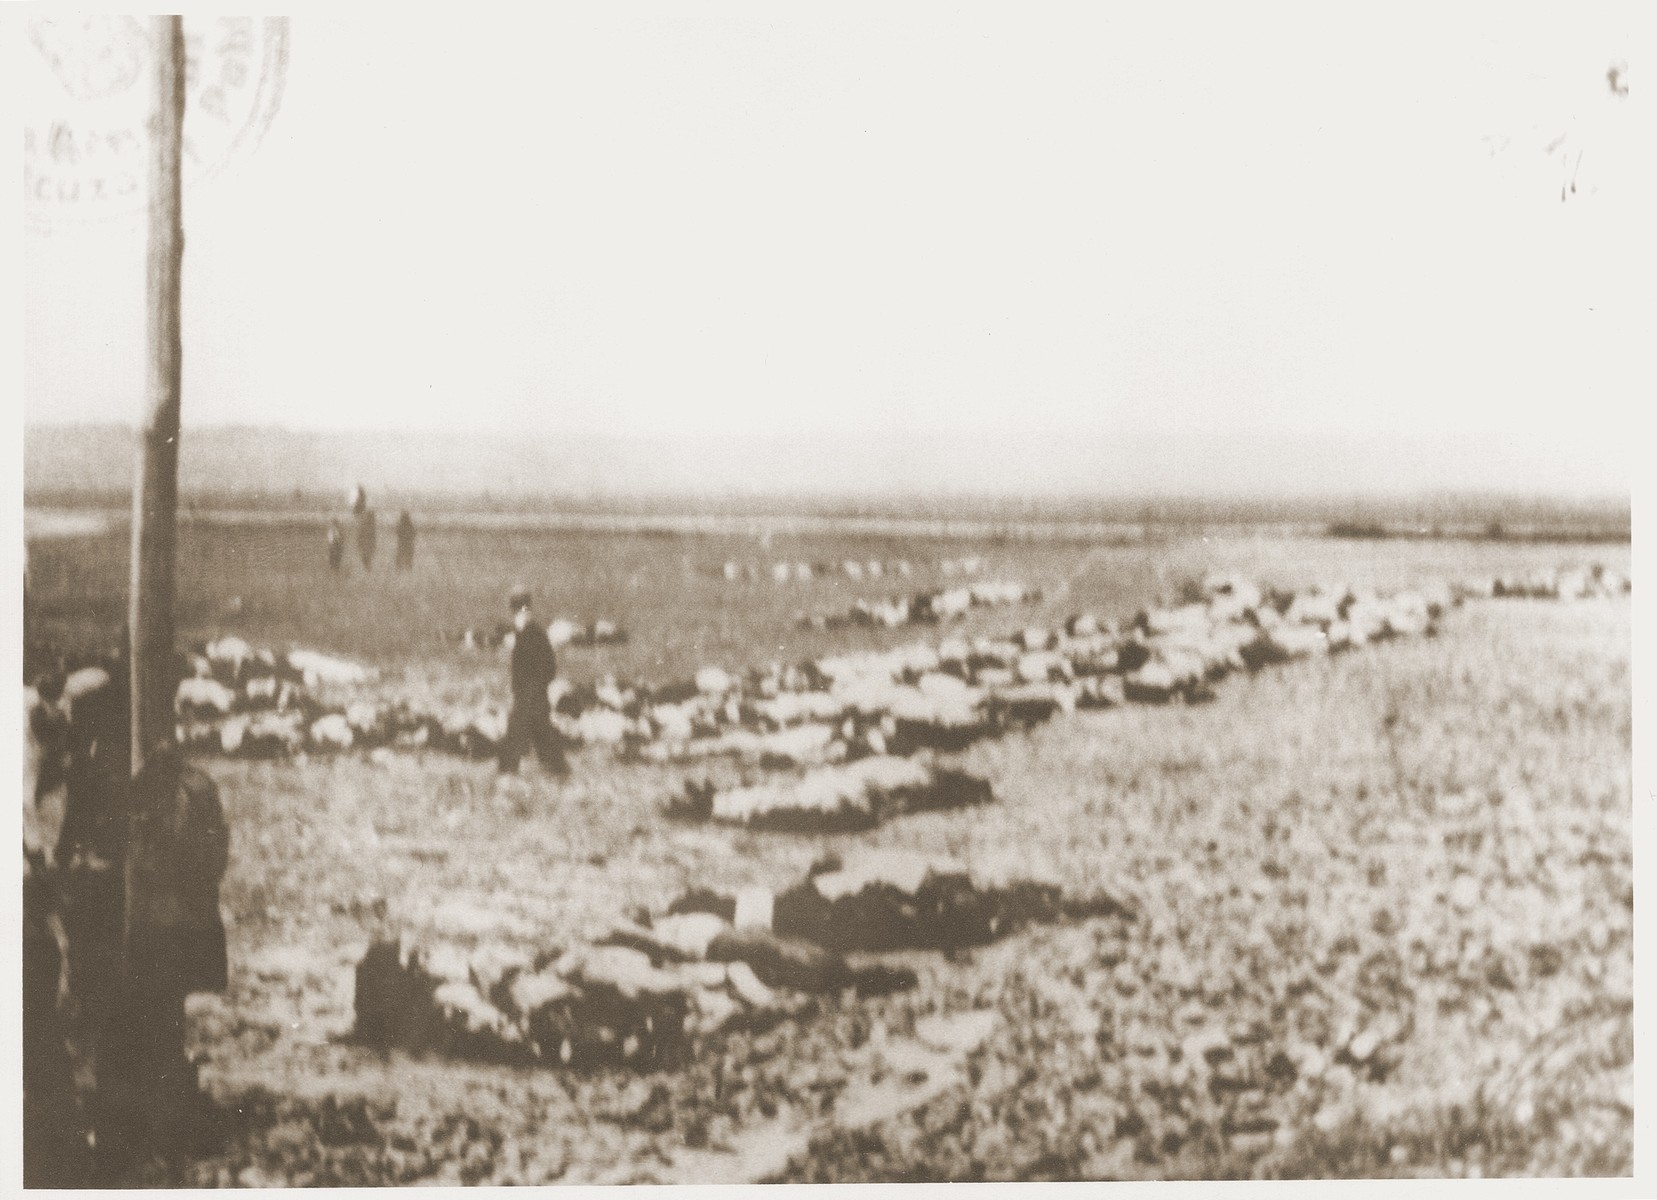 The bodies of Jews removed from the Iasi death train during a stop on the journey, are laid out in rows beside the tracks.